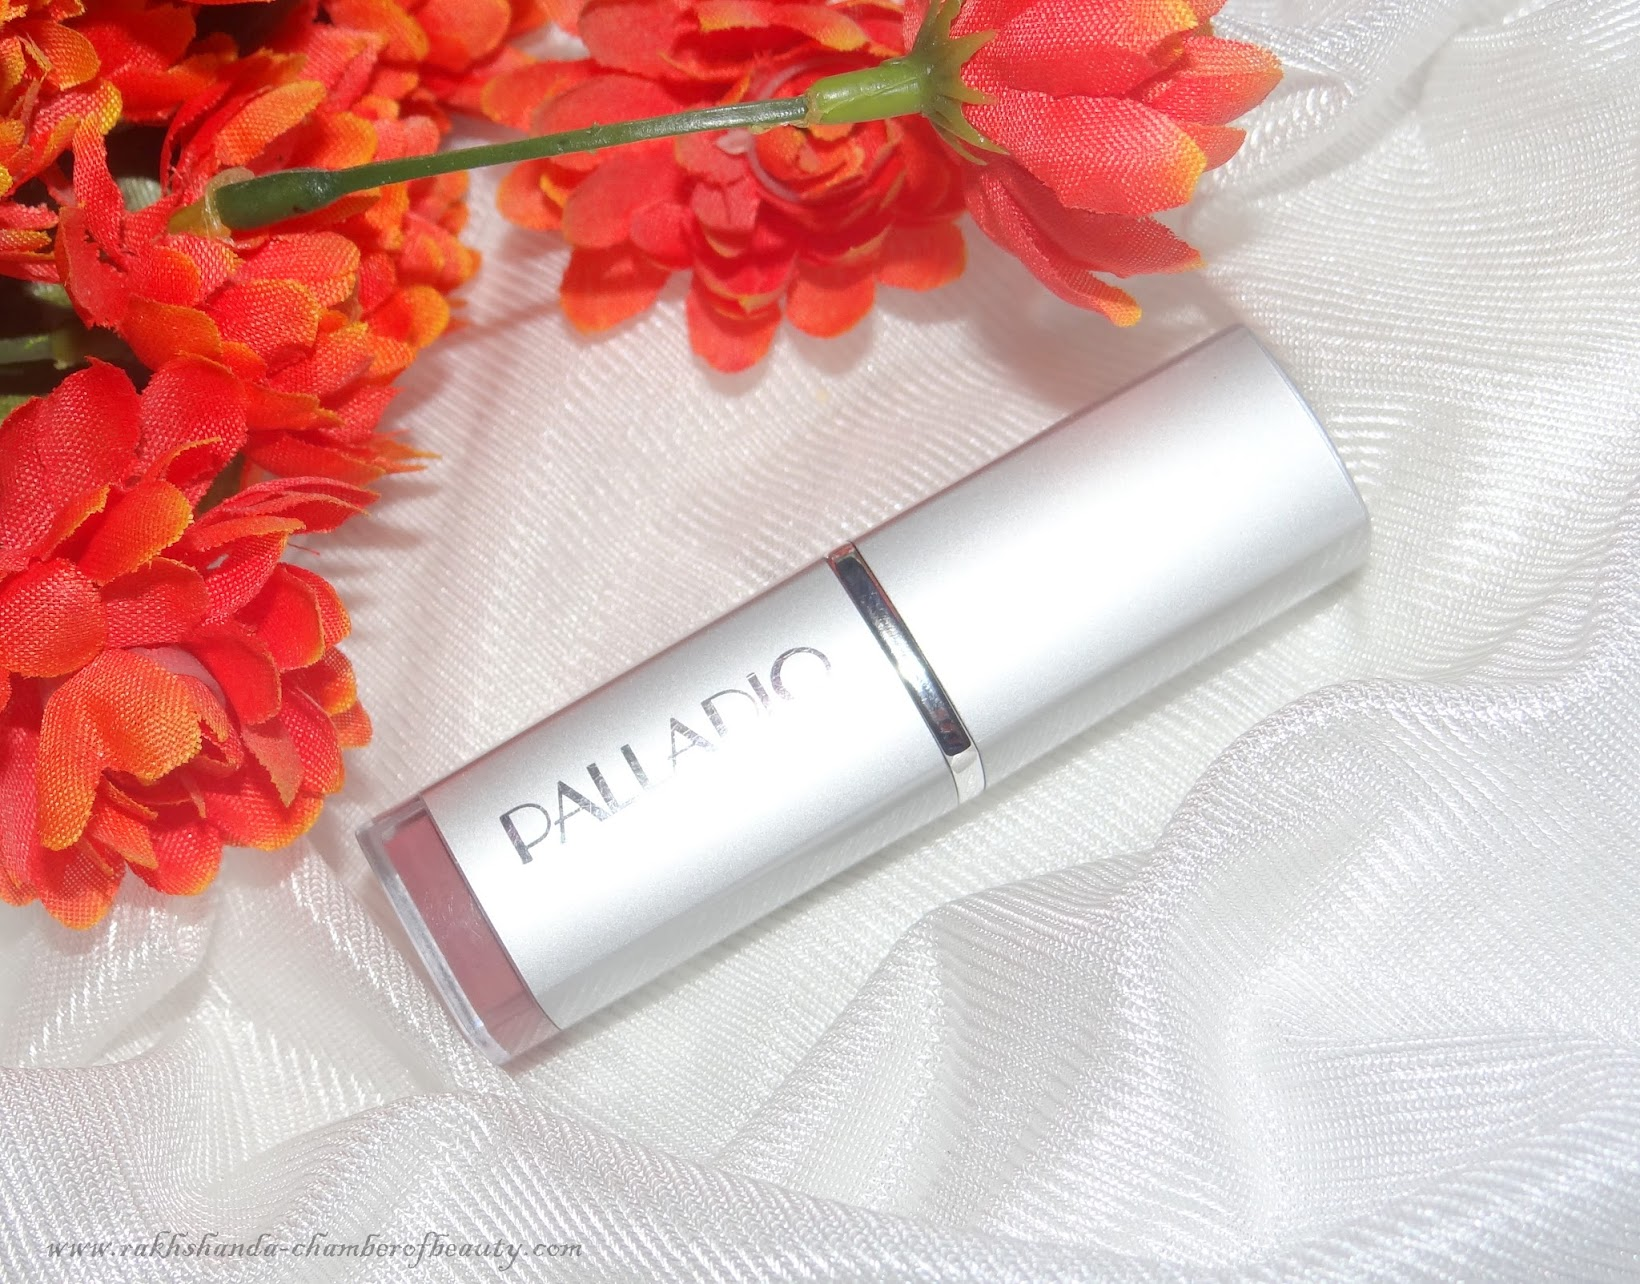 Palladio Meadow Sweet lipstick-review, swatches, Palladio Lipstick, creamy, herbal, Palladio Herbal Lipstick review, Indian beauty blogger, muted soft rose pink, muddy pink, chamber of beauty, Indian makeup blog, lipstick, nude pink lipstick review, nude lips, Palladio Meadow Sweet lipstick